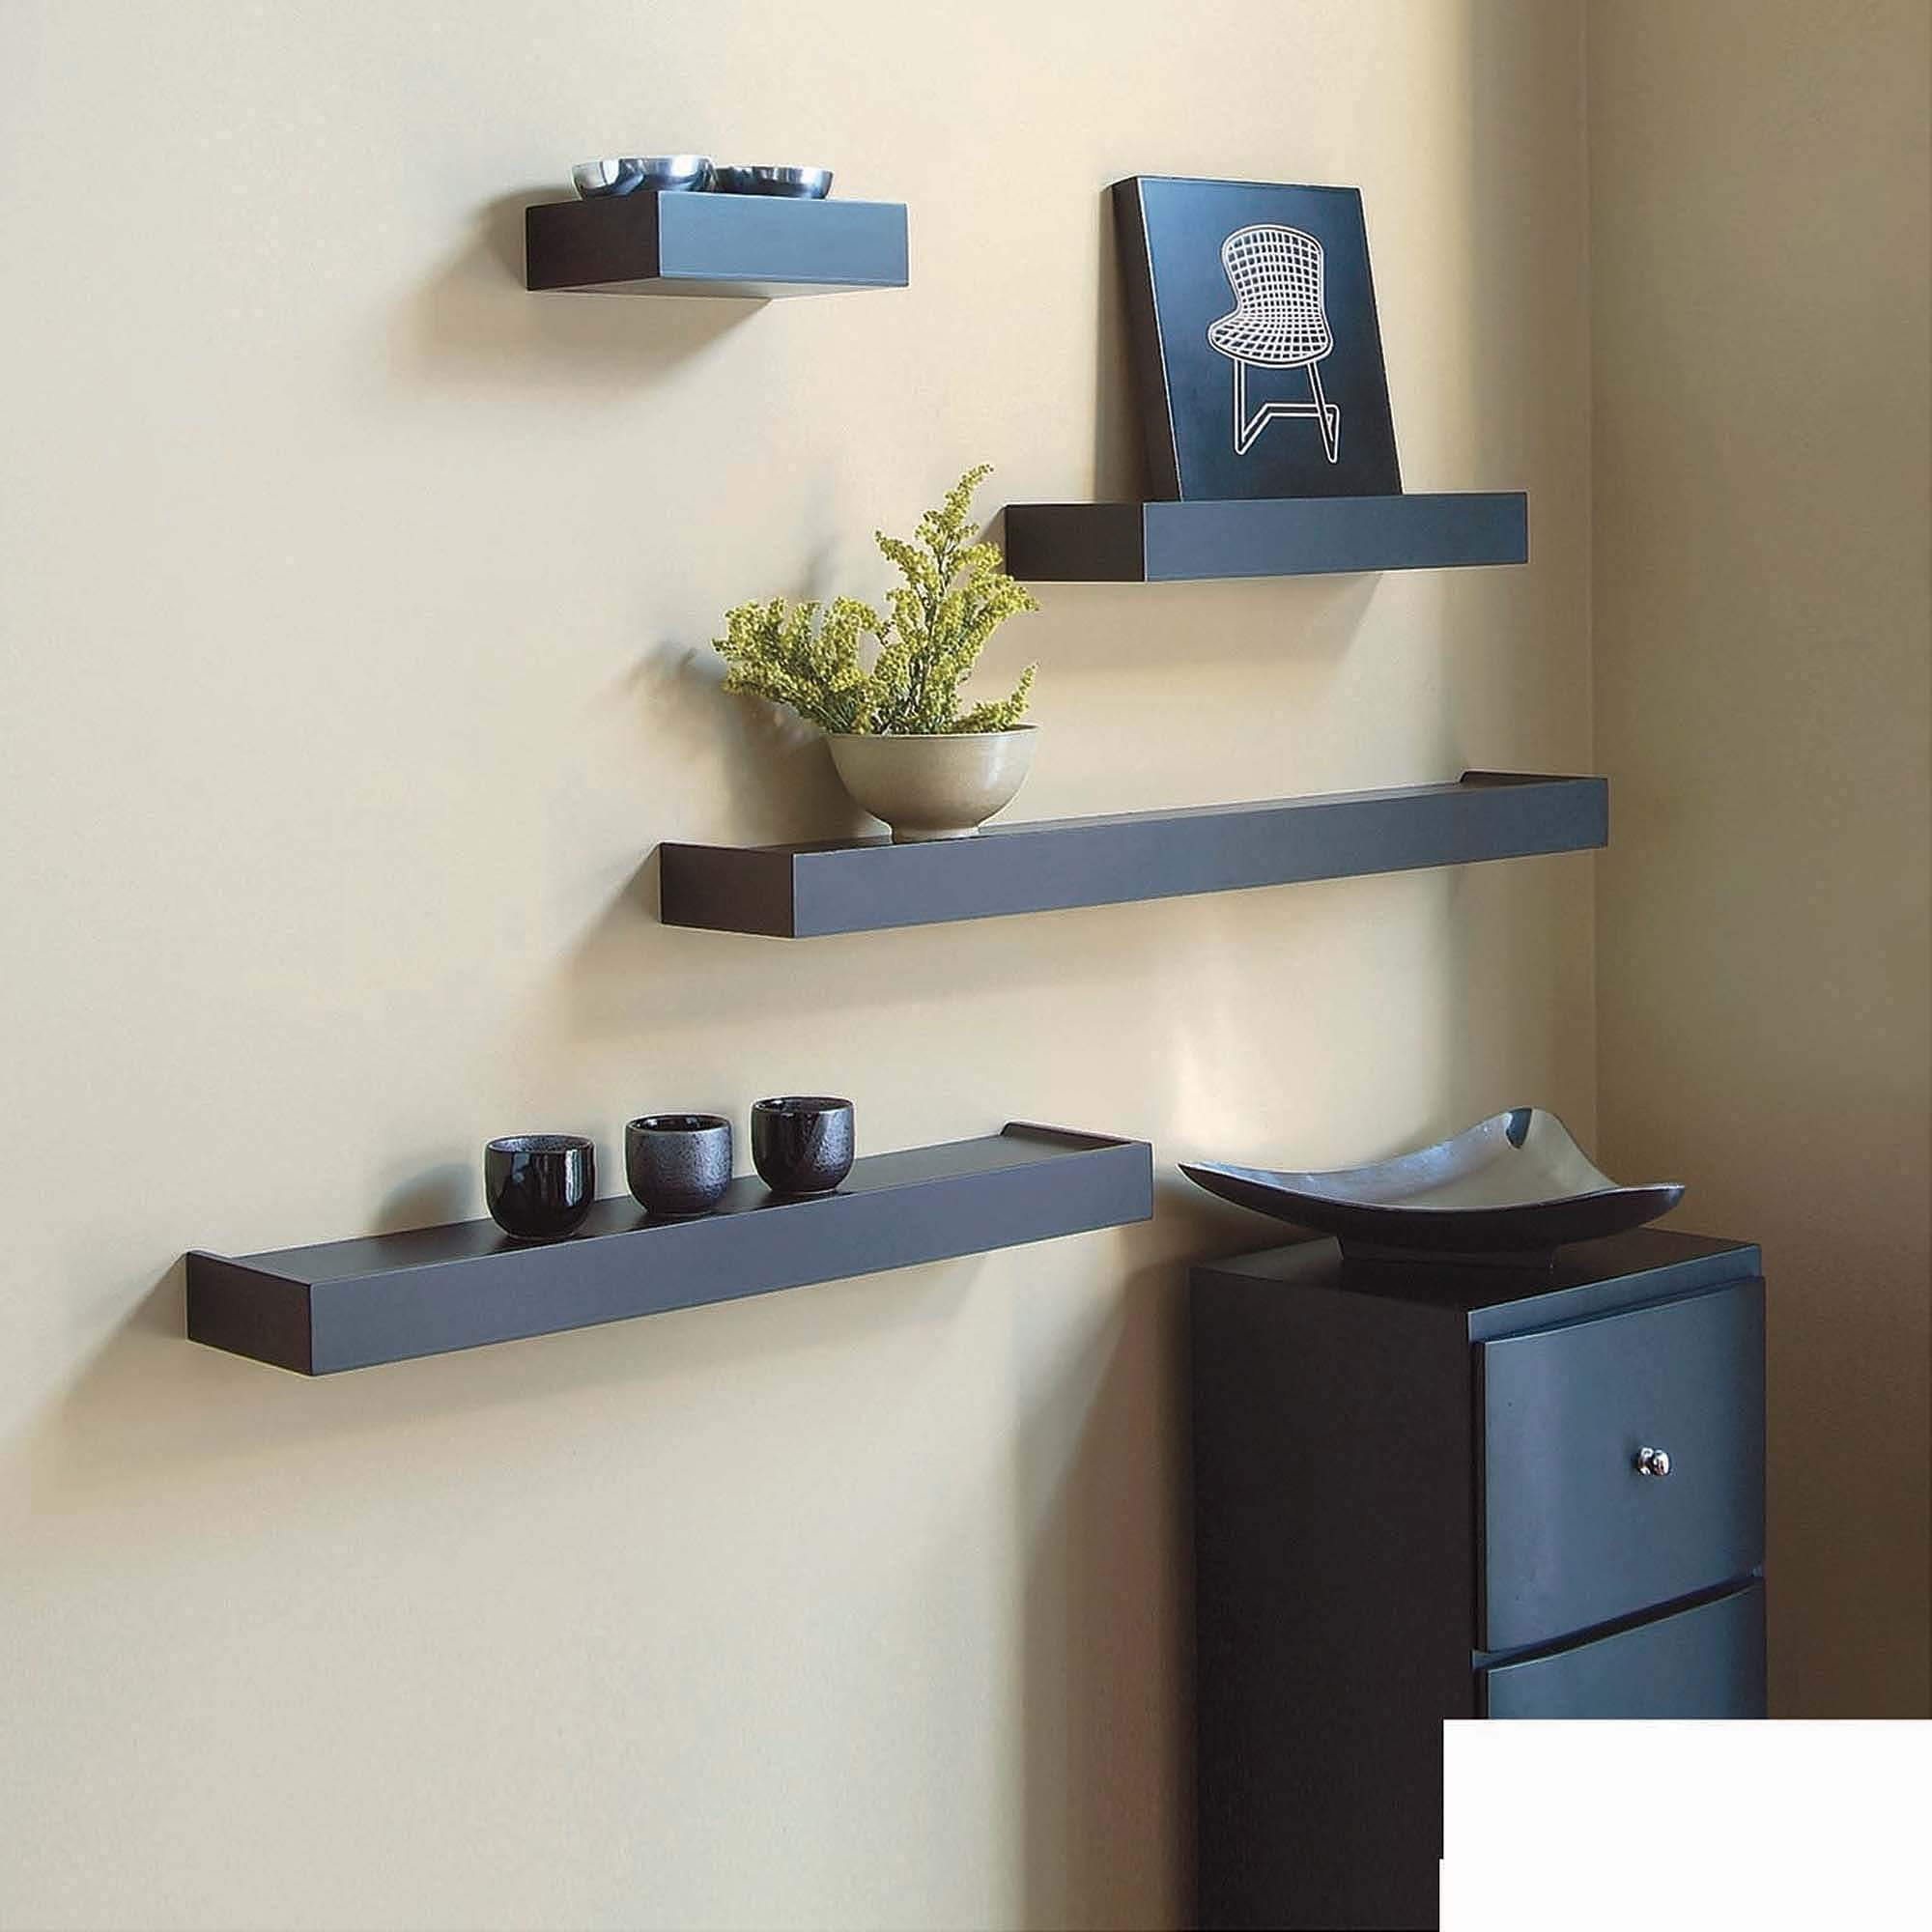 Kiera Grace Vertigo Set Of 4 Black Wall Shelves 6 12 20 24